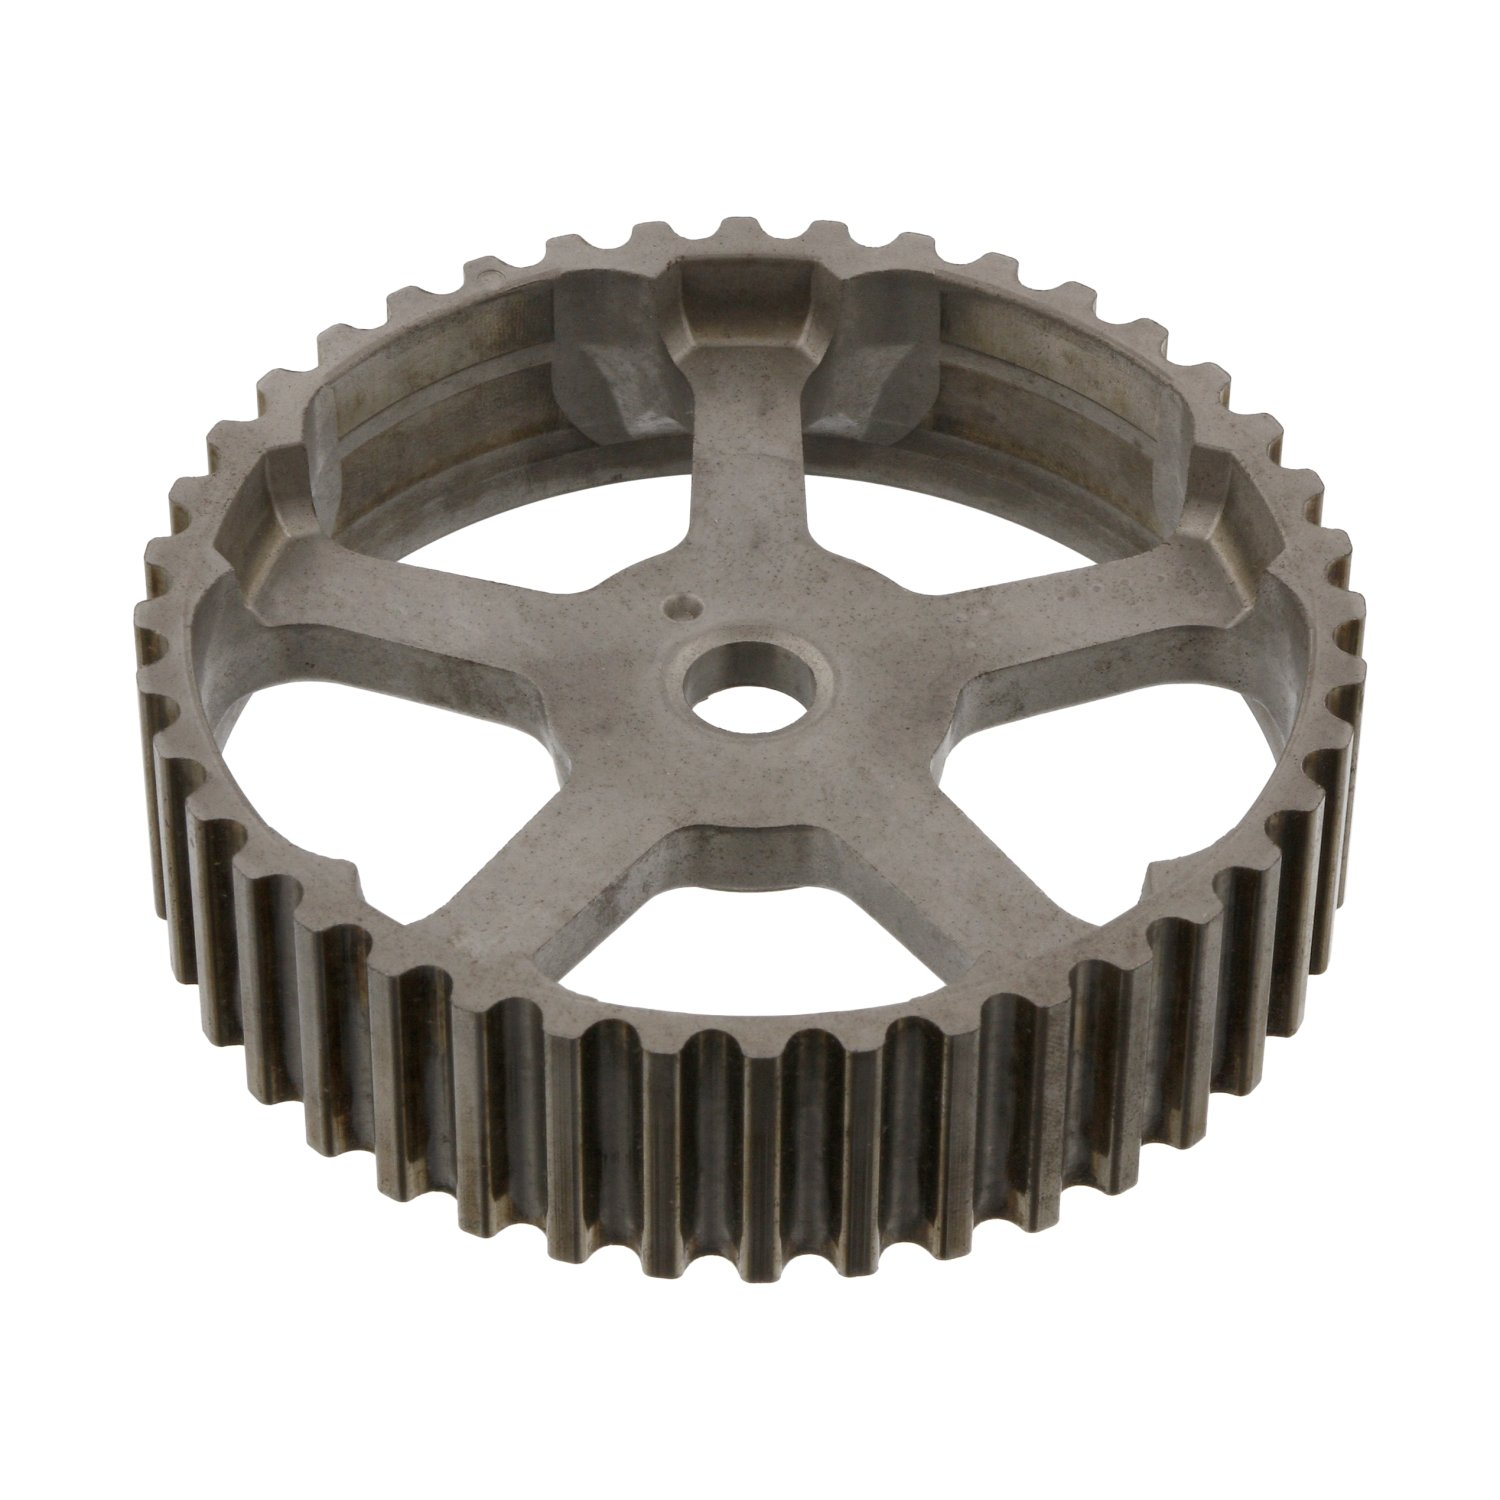 febi bilstein 36434 camshaft timing gear for Timing Belt - Pack of 1